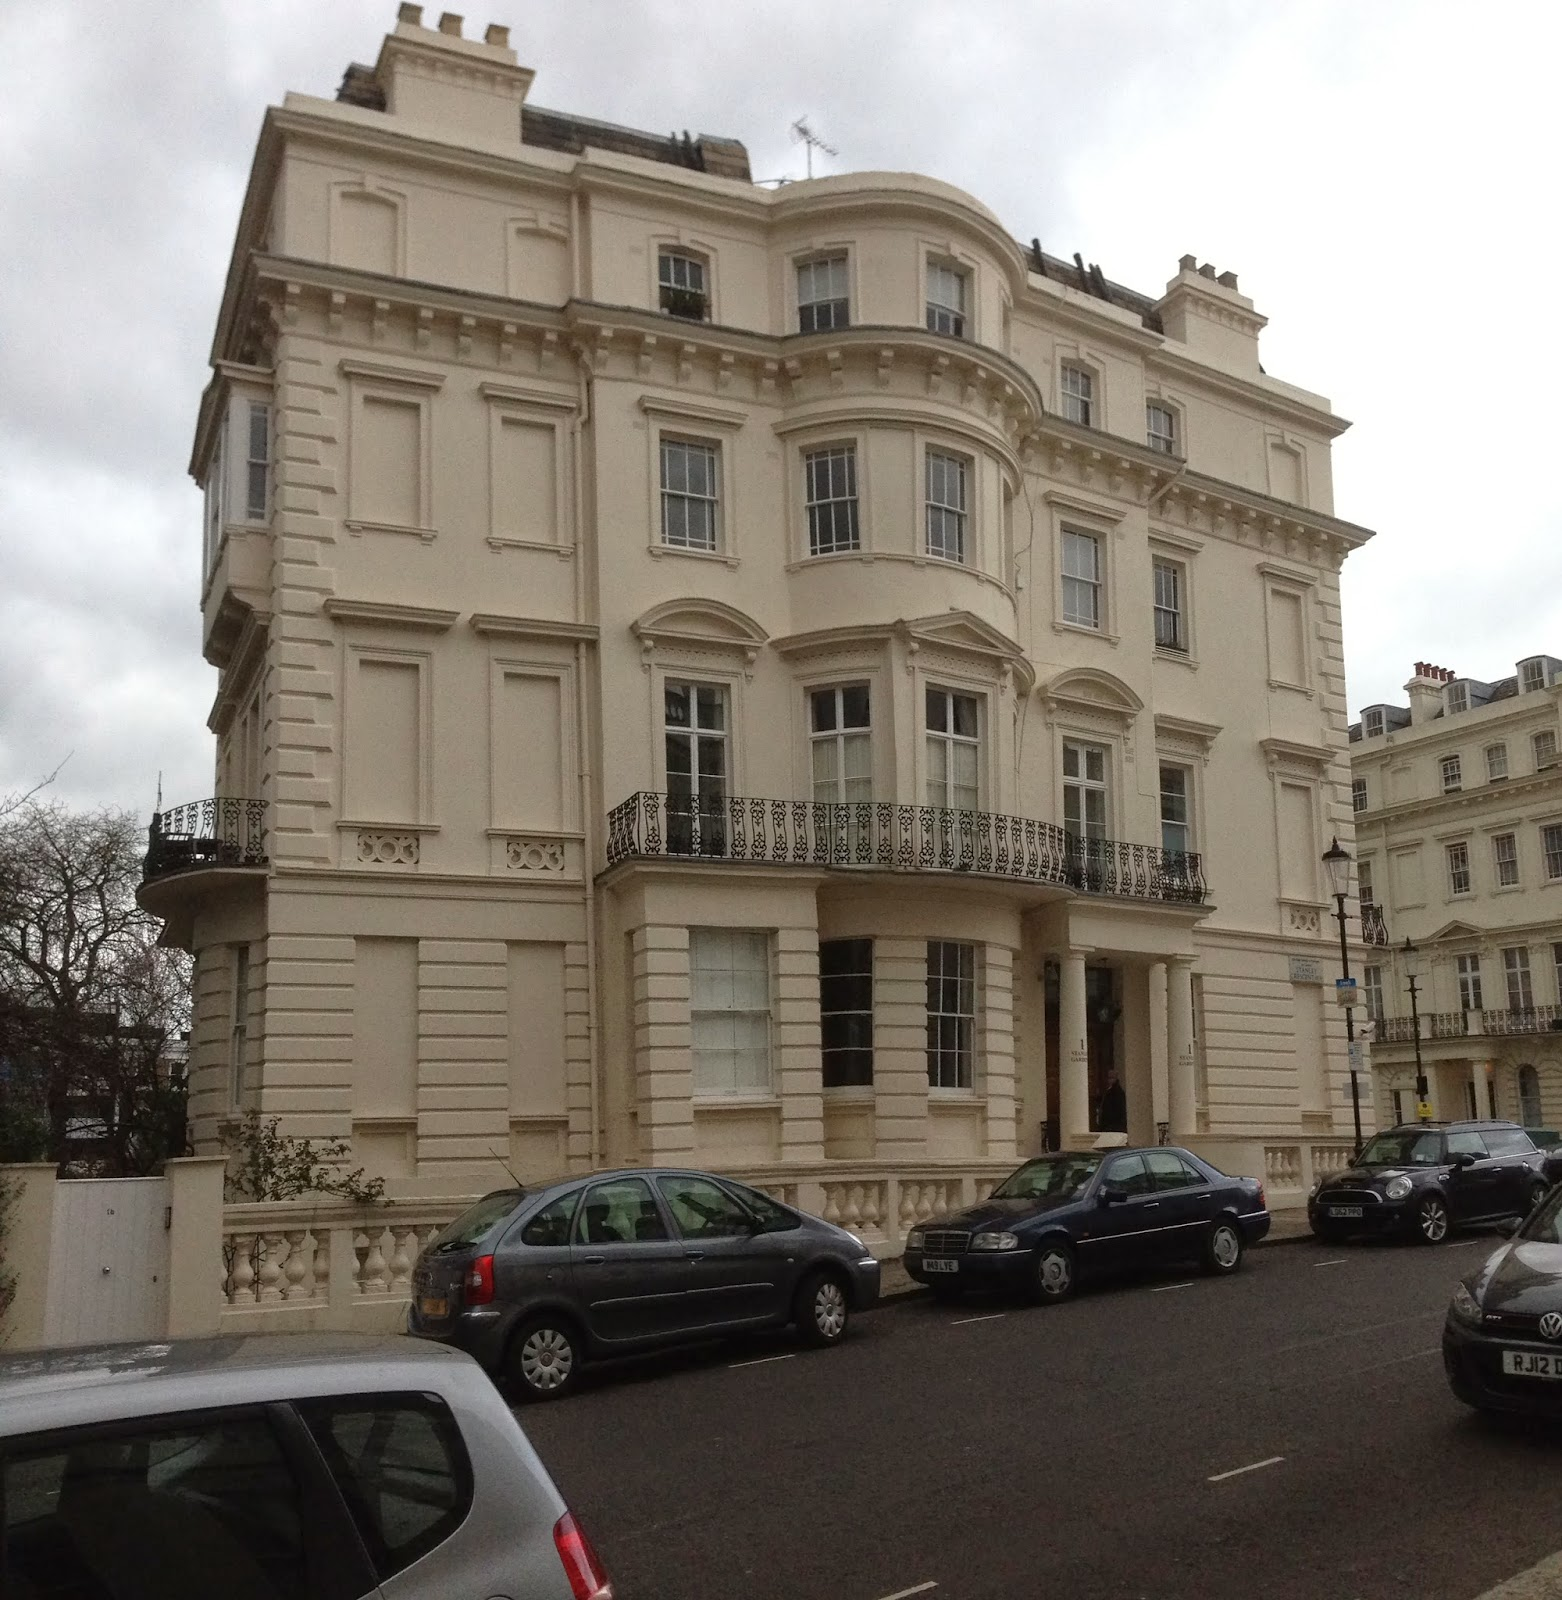 The Address Is No 1 Stanley Crescent In Notting Hill Which A District Royal Borough Of Kensington And Chelsea Was Once